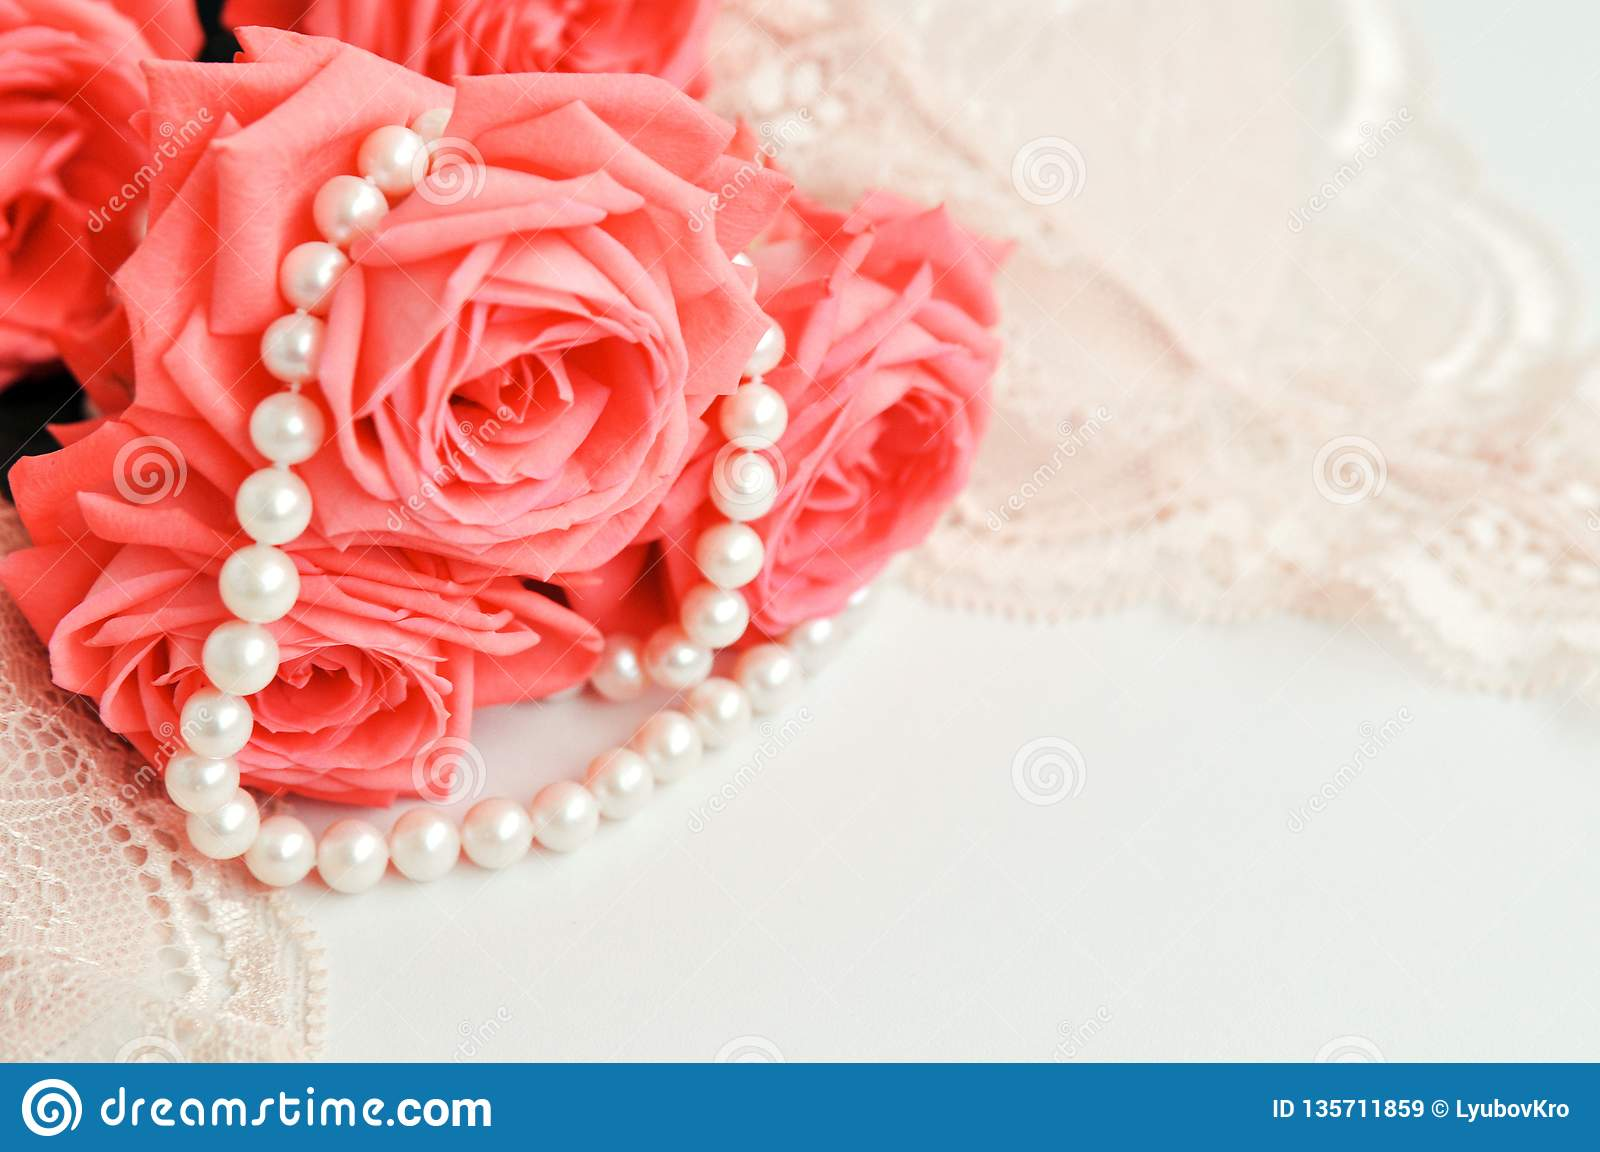 6b1e54bee5 ... roses trend color on a pale pink bra and pearl necklace on a white  background. top view. close up. Stylish lingerie flat lay. Underwear  fashion concept